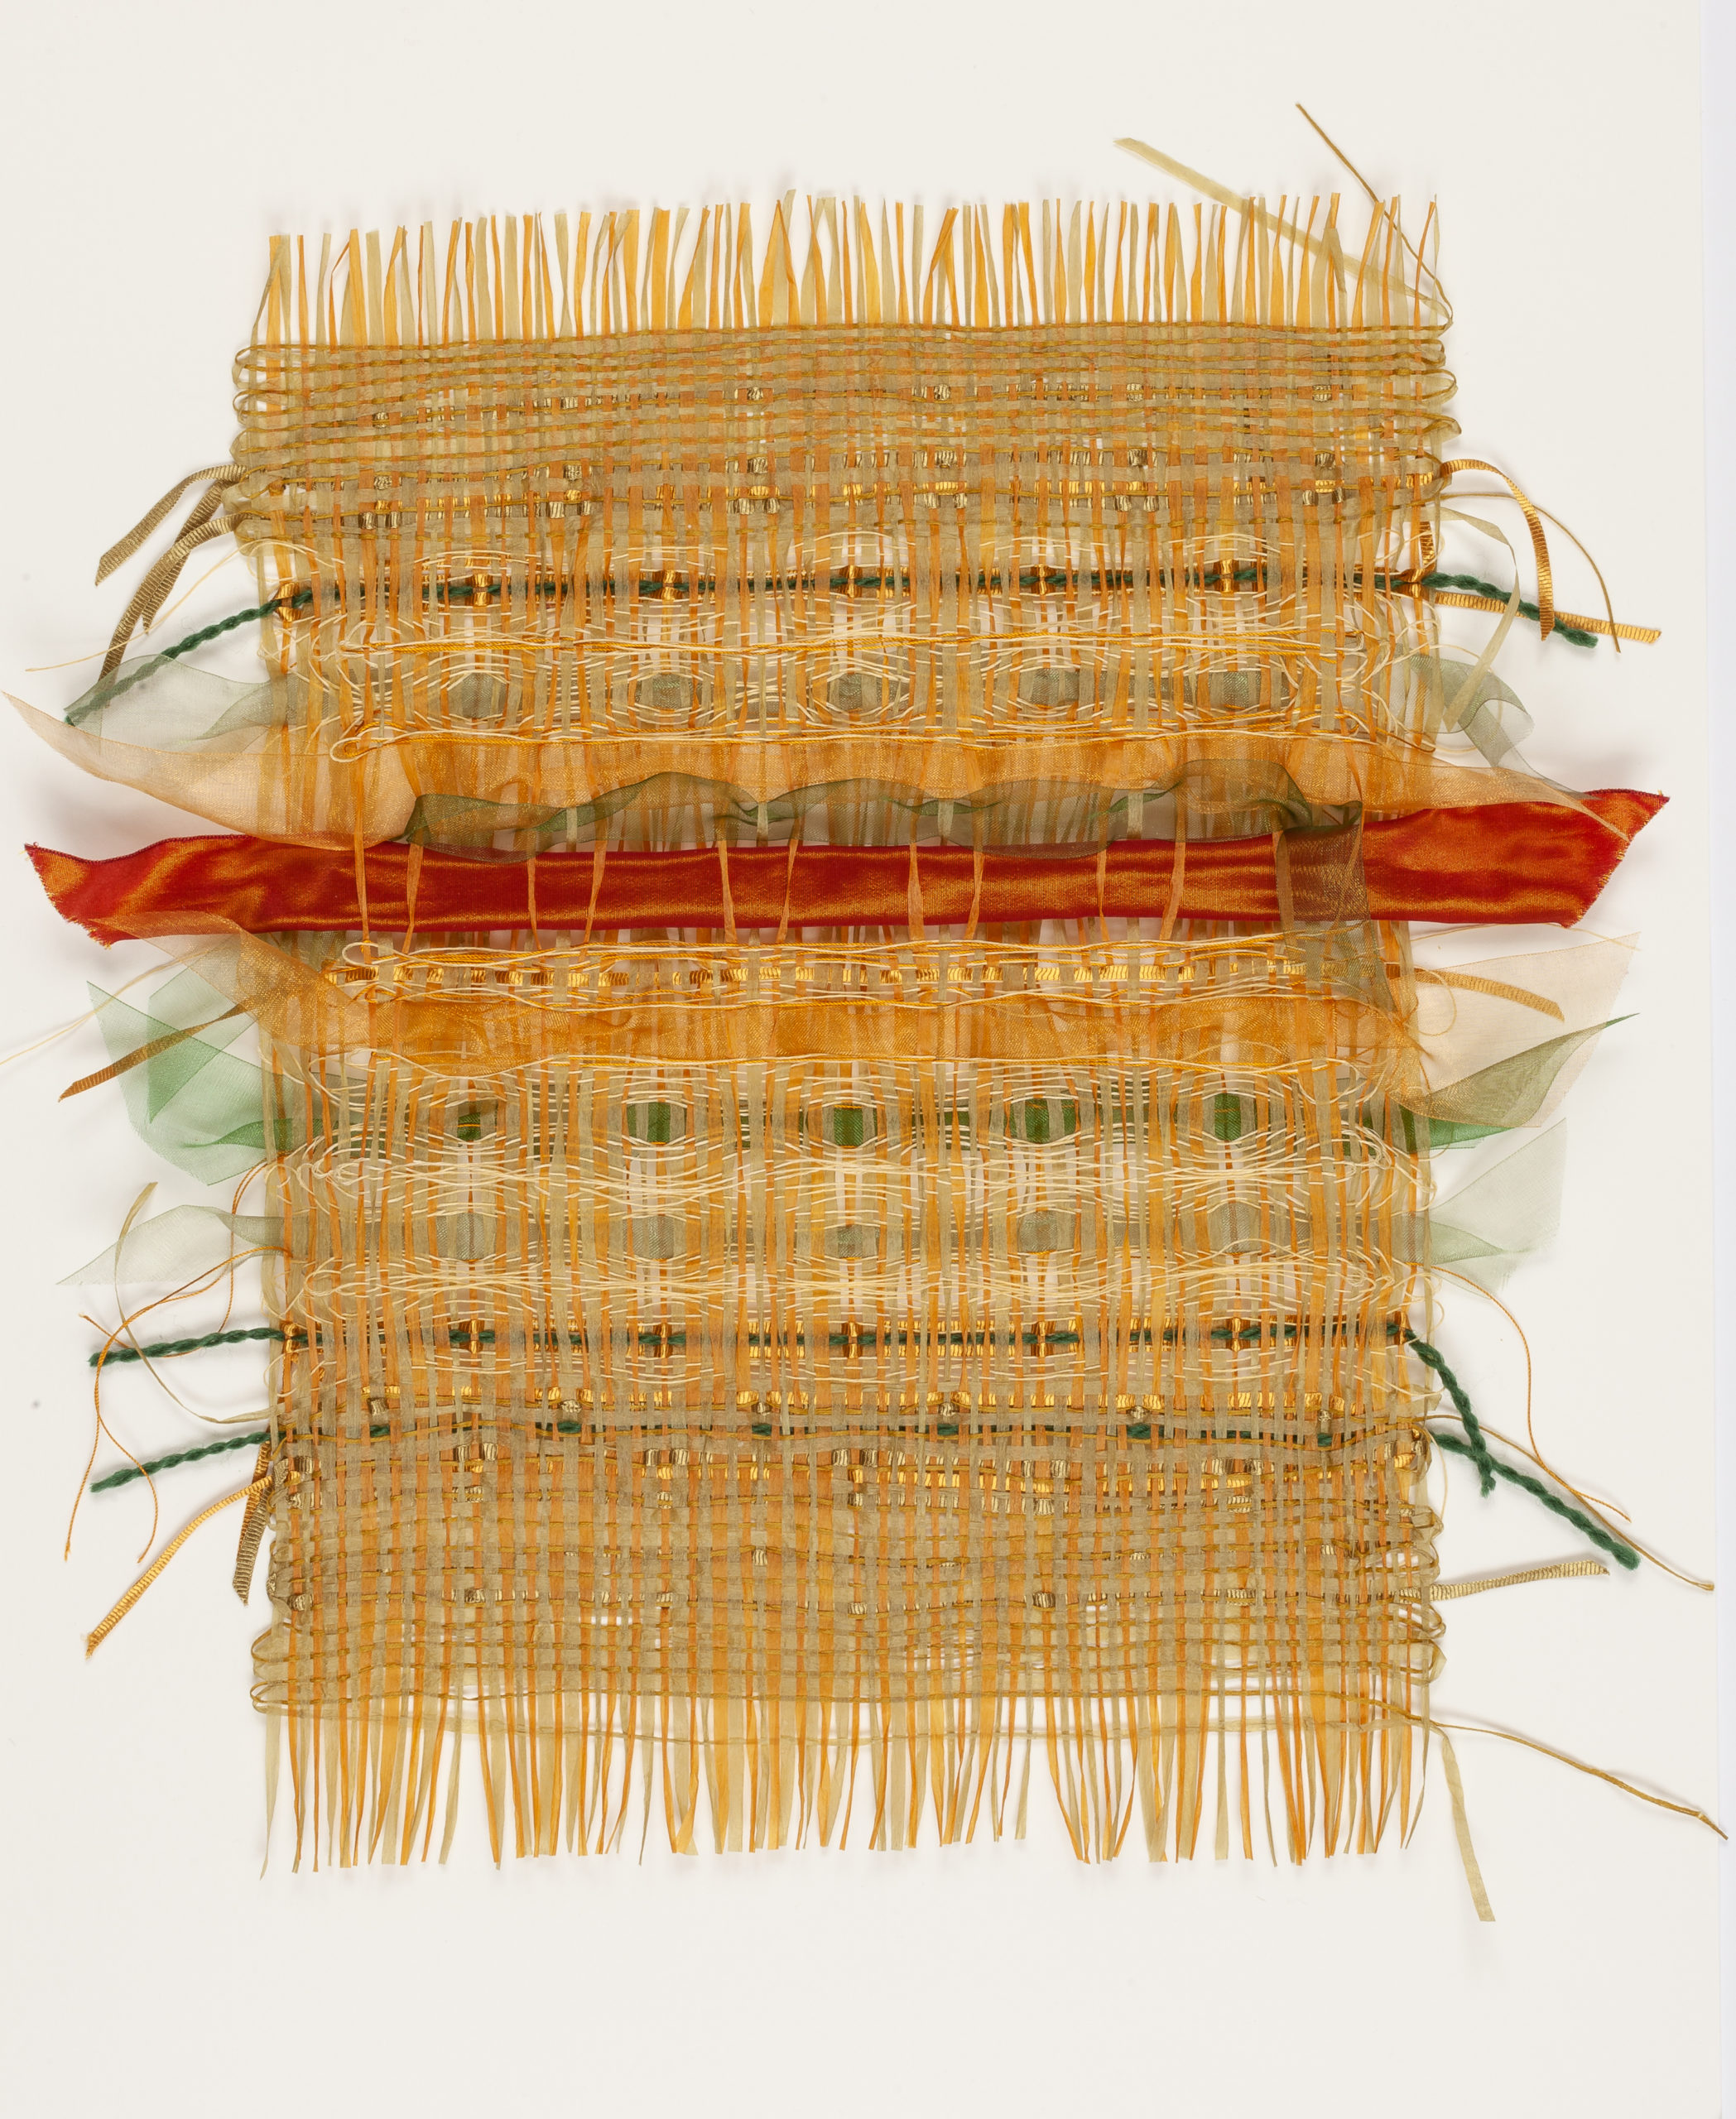 A hand woven weavescape in golds, red and green